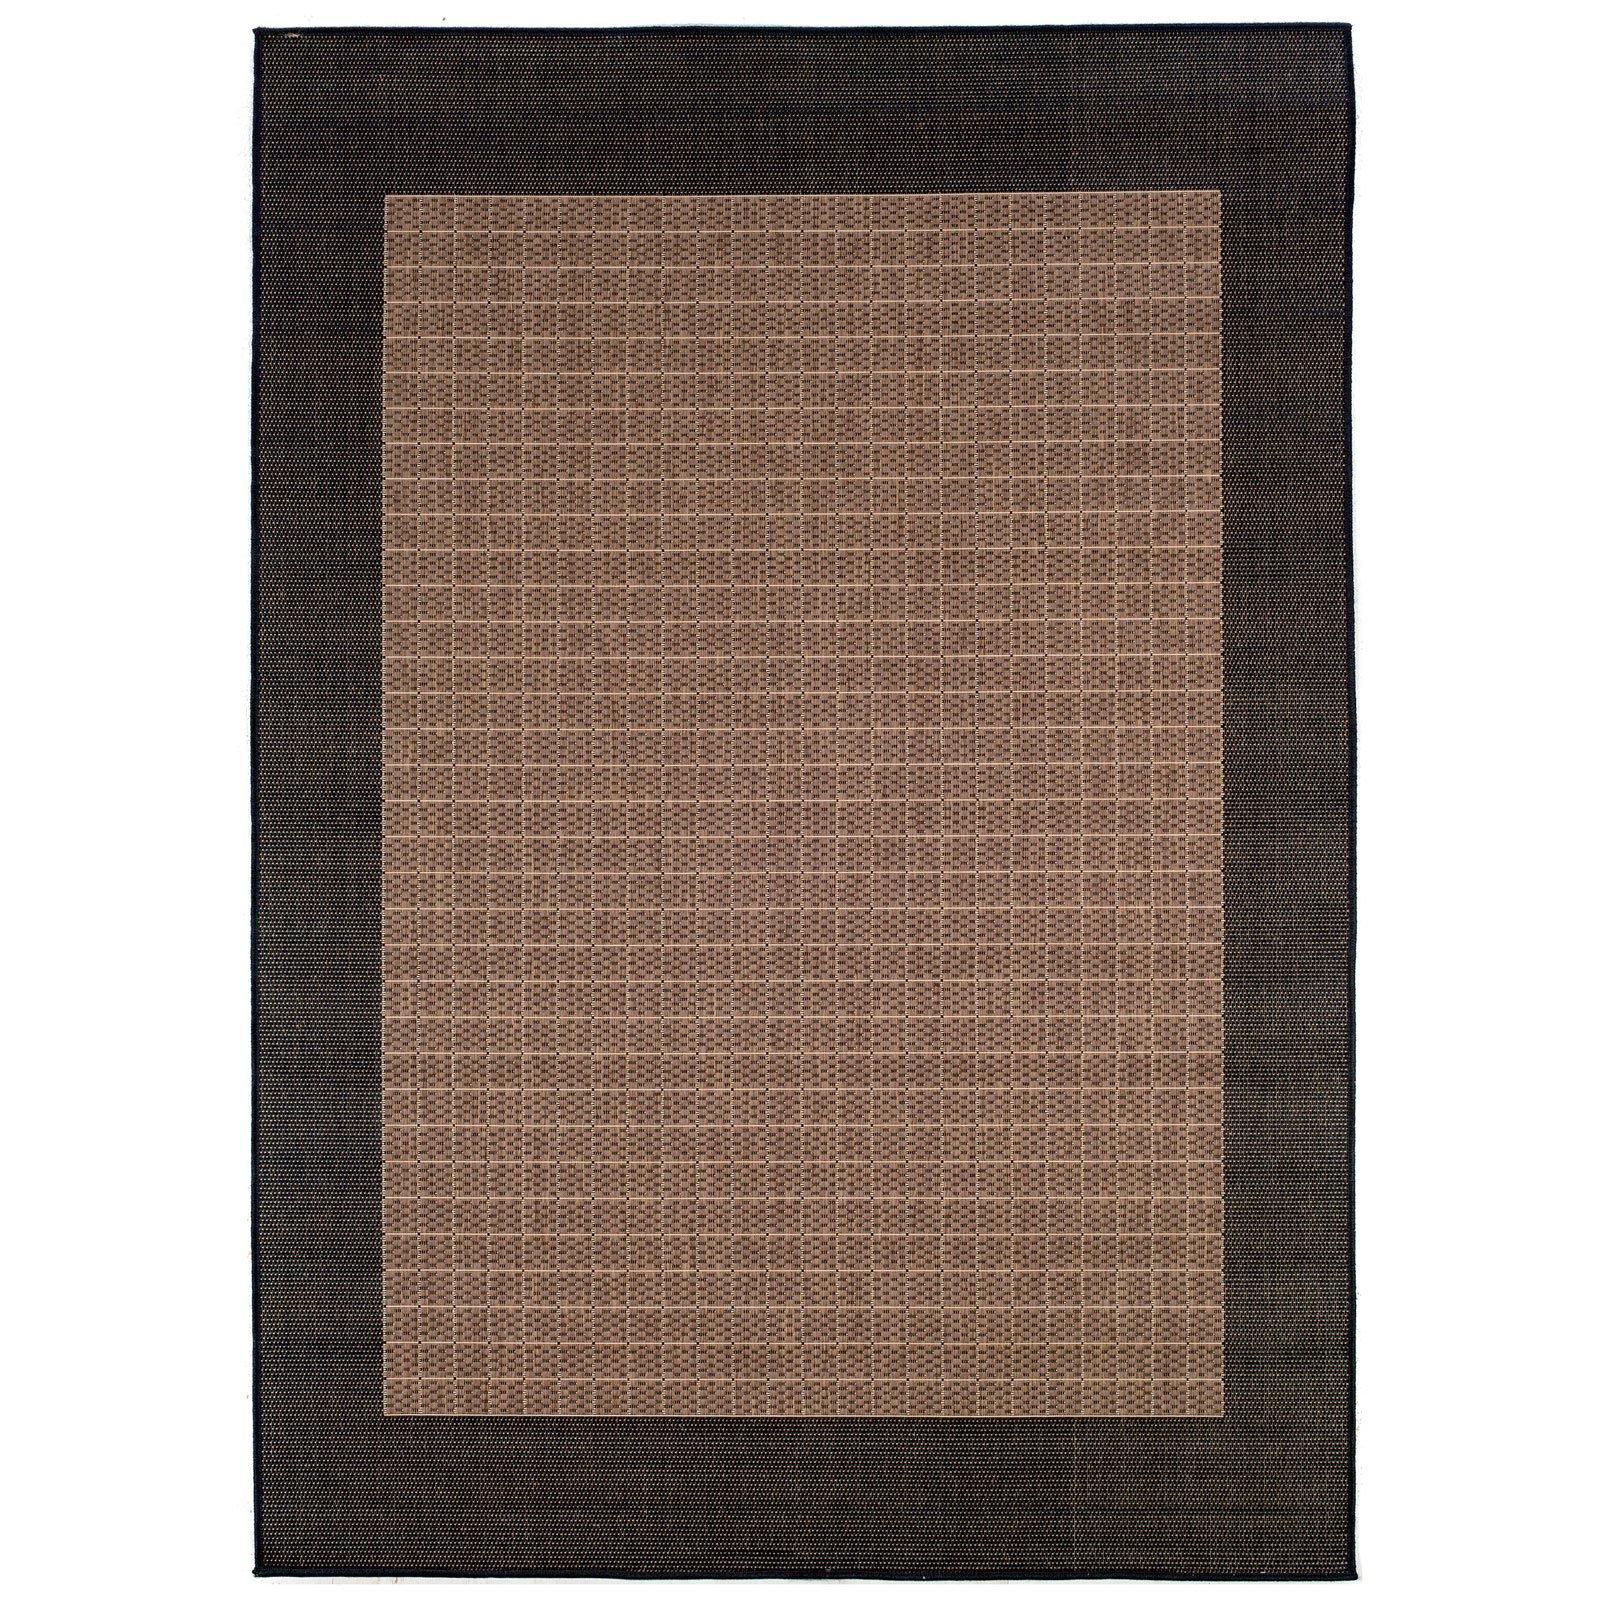 Couristan Recife Checkered Field Indoor/Outdoor Area Rug